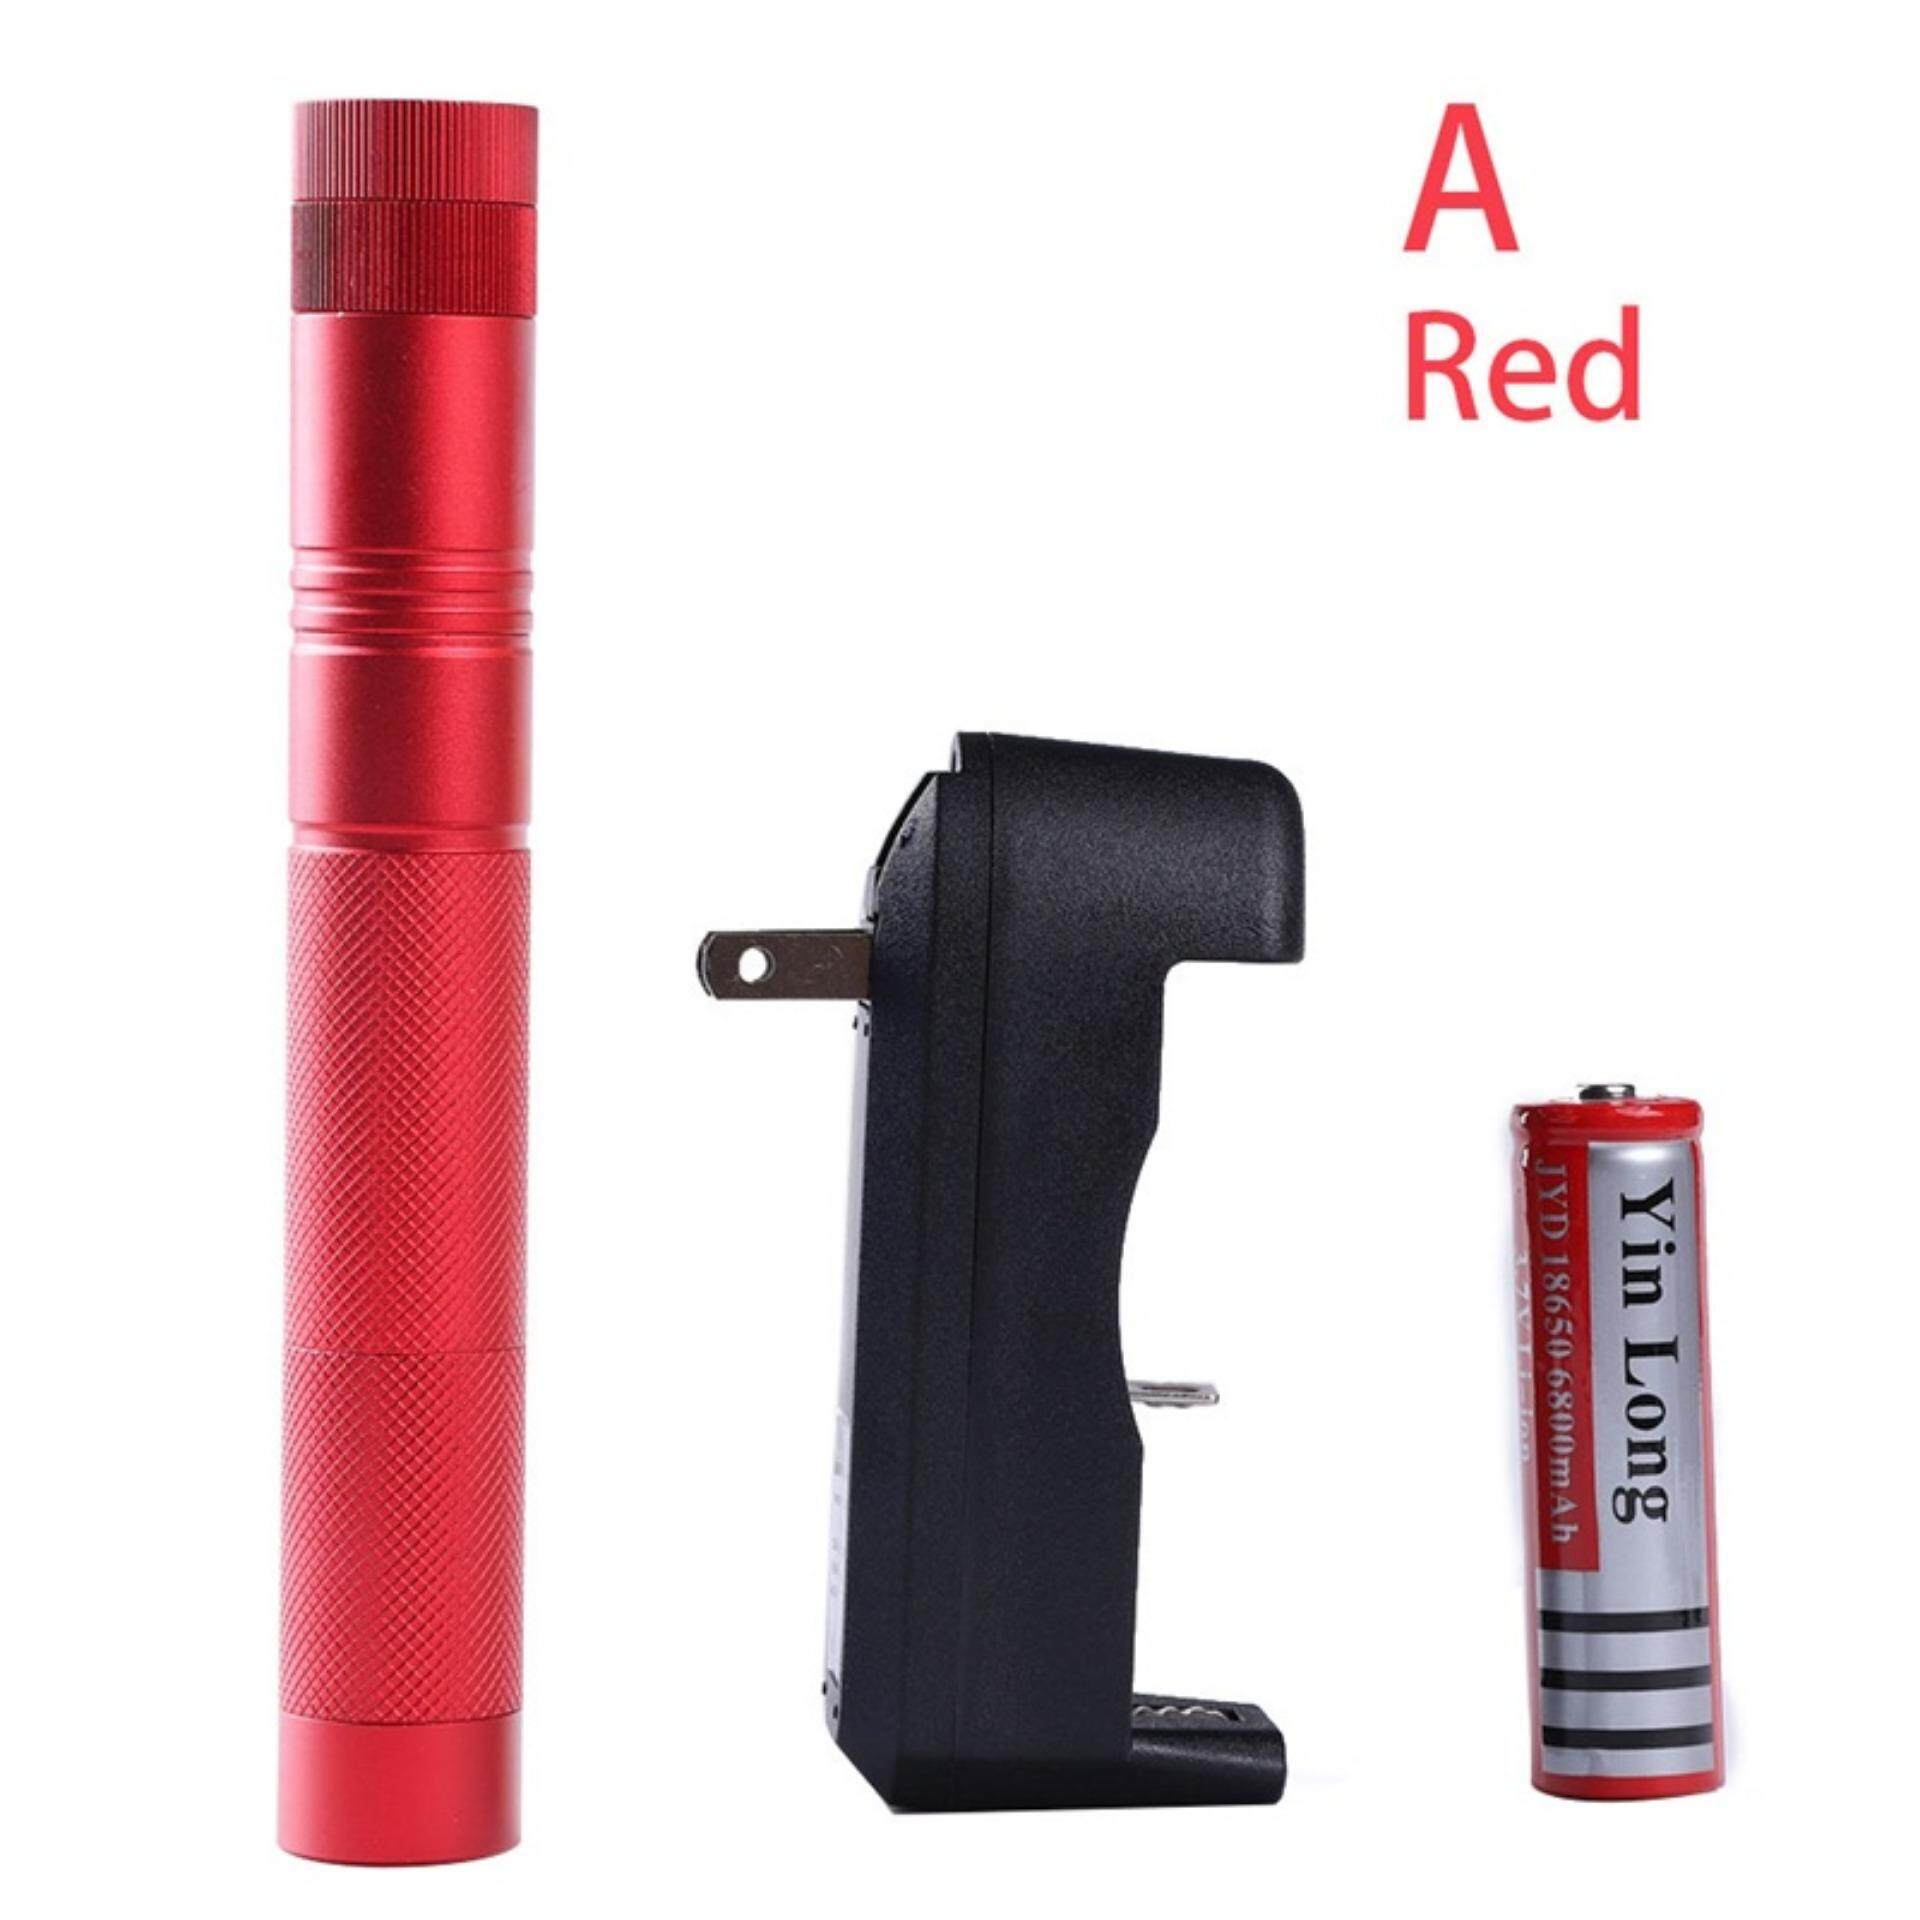 10Miles 532nm 303 Green Laser Pointer Lazer Pen Visible Beam Light+18650+Charger New Red A